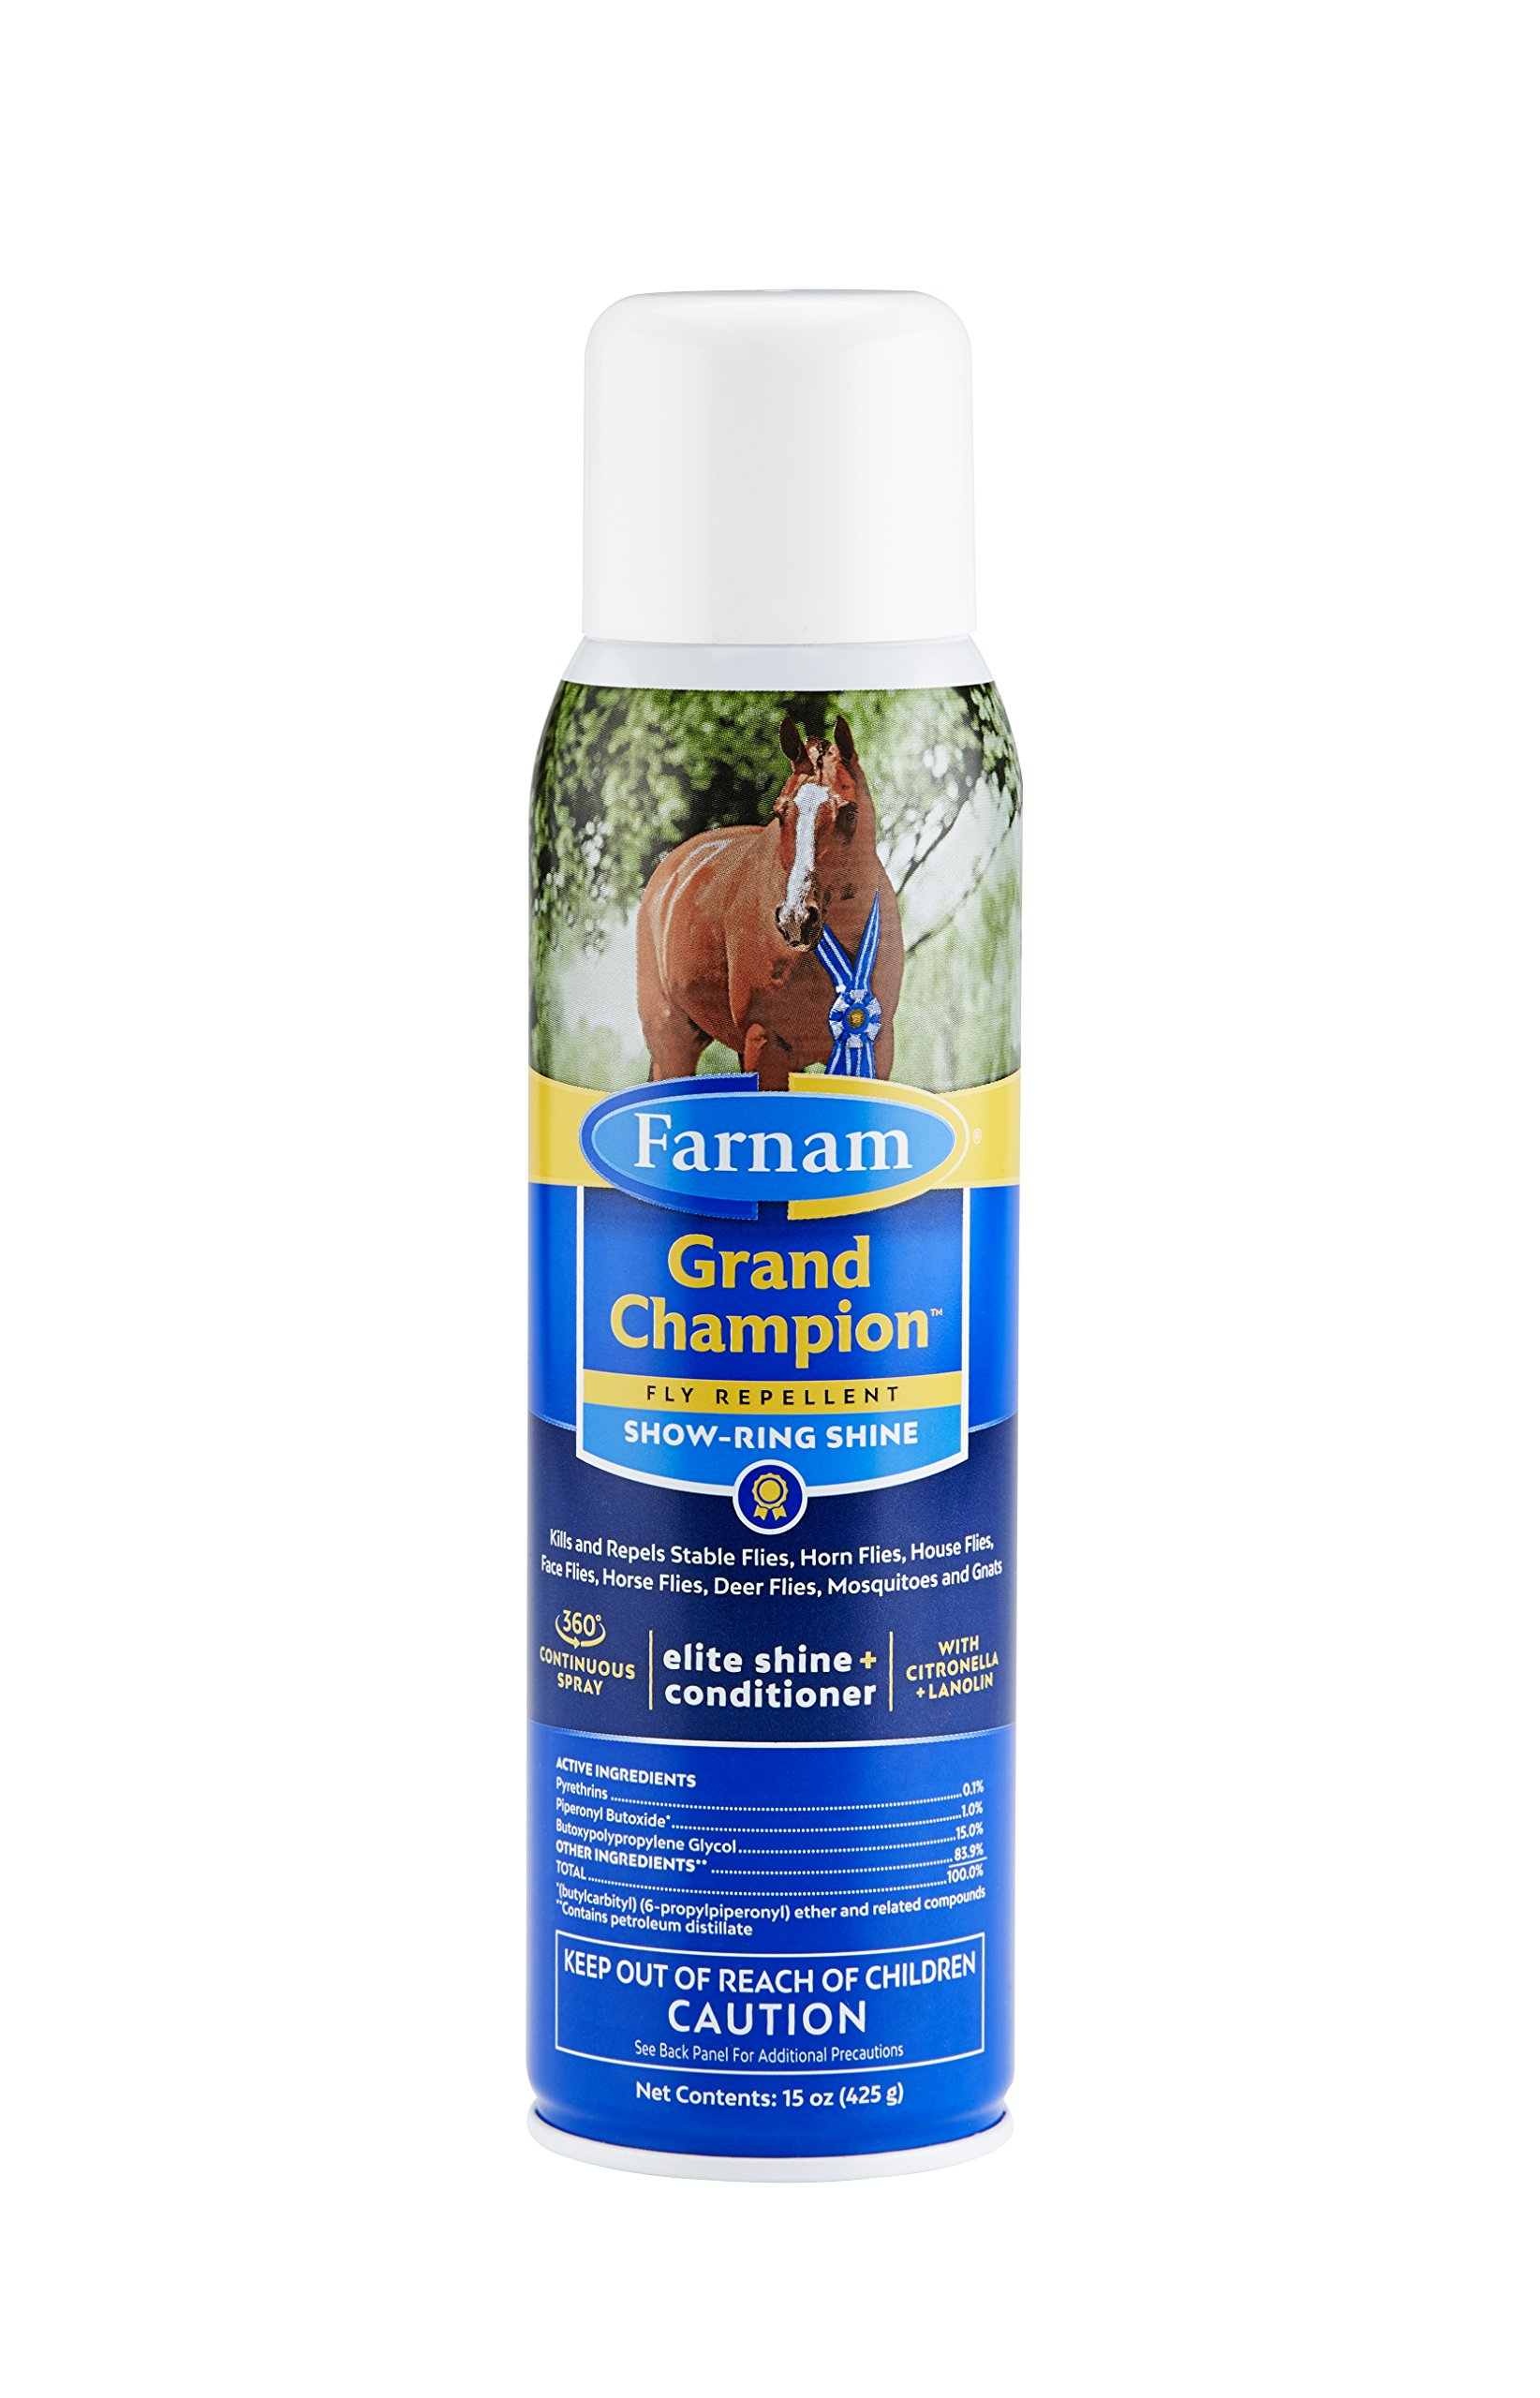 Farnam Grand Champion Fly Repellent for Horses, Plus Coat Conditioner for Show Ring Shine, 15-Ounce Non-Aerosol Spray Bottle